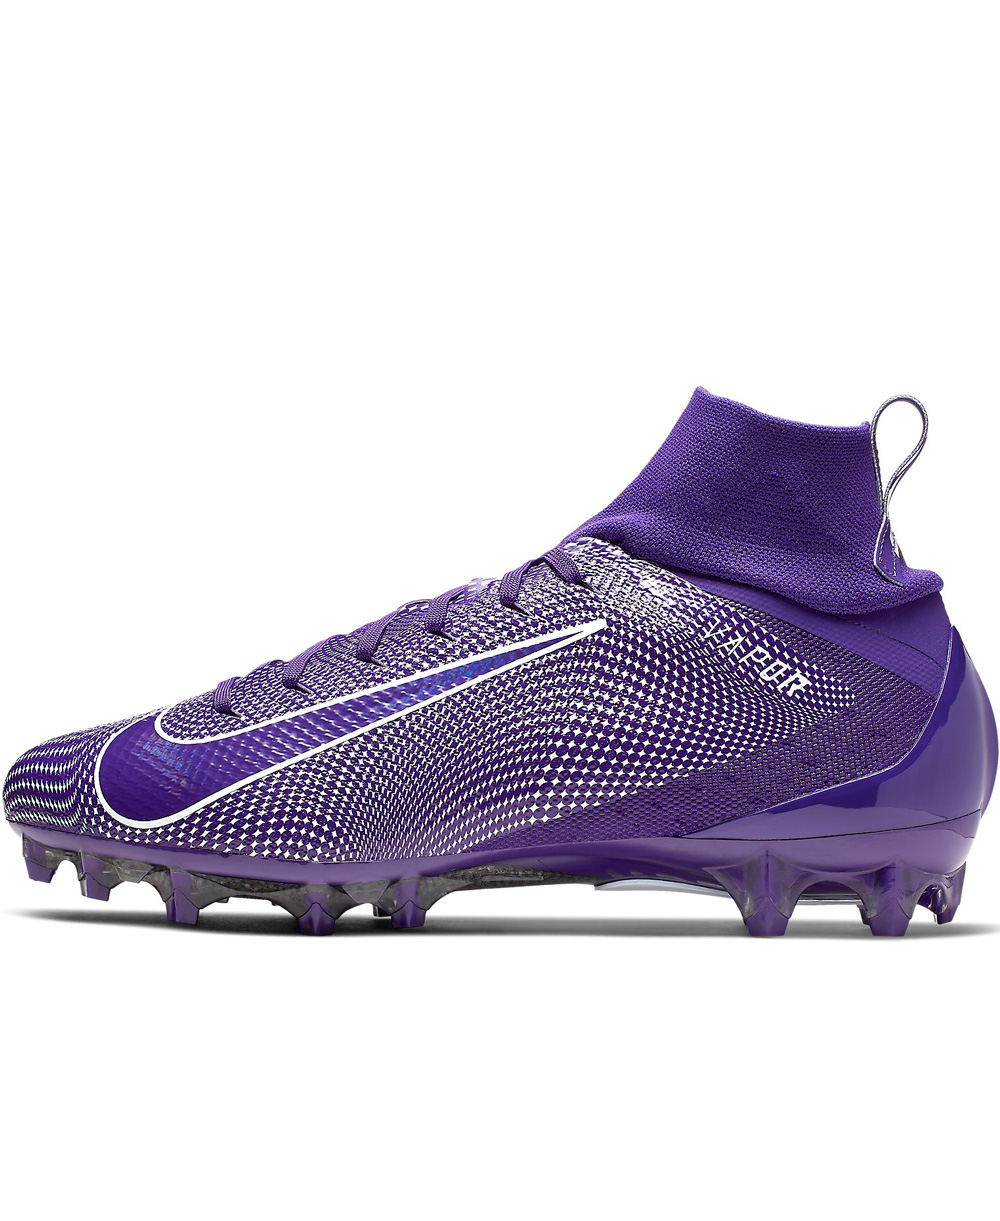 Vapor Untouchable 3 Pro Scarpe da Football Americano Uomo Court Purple